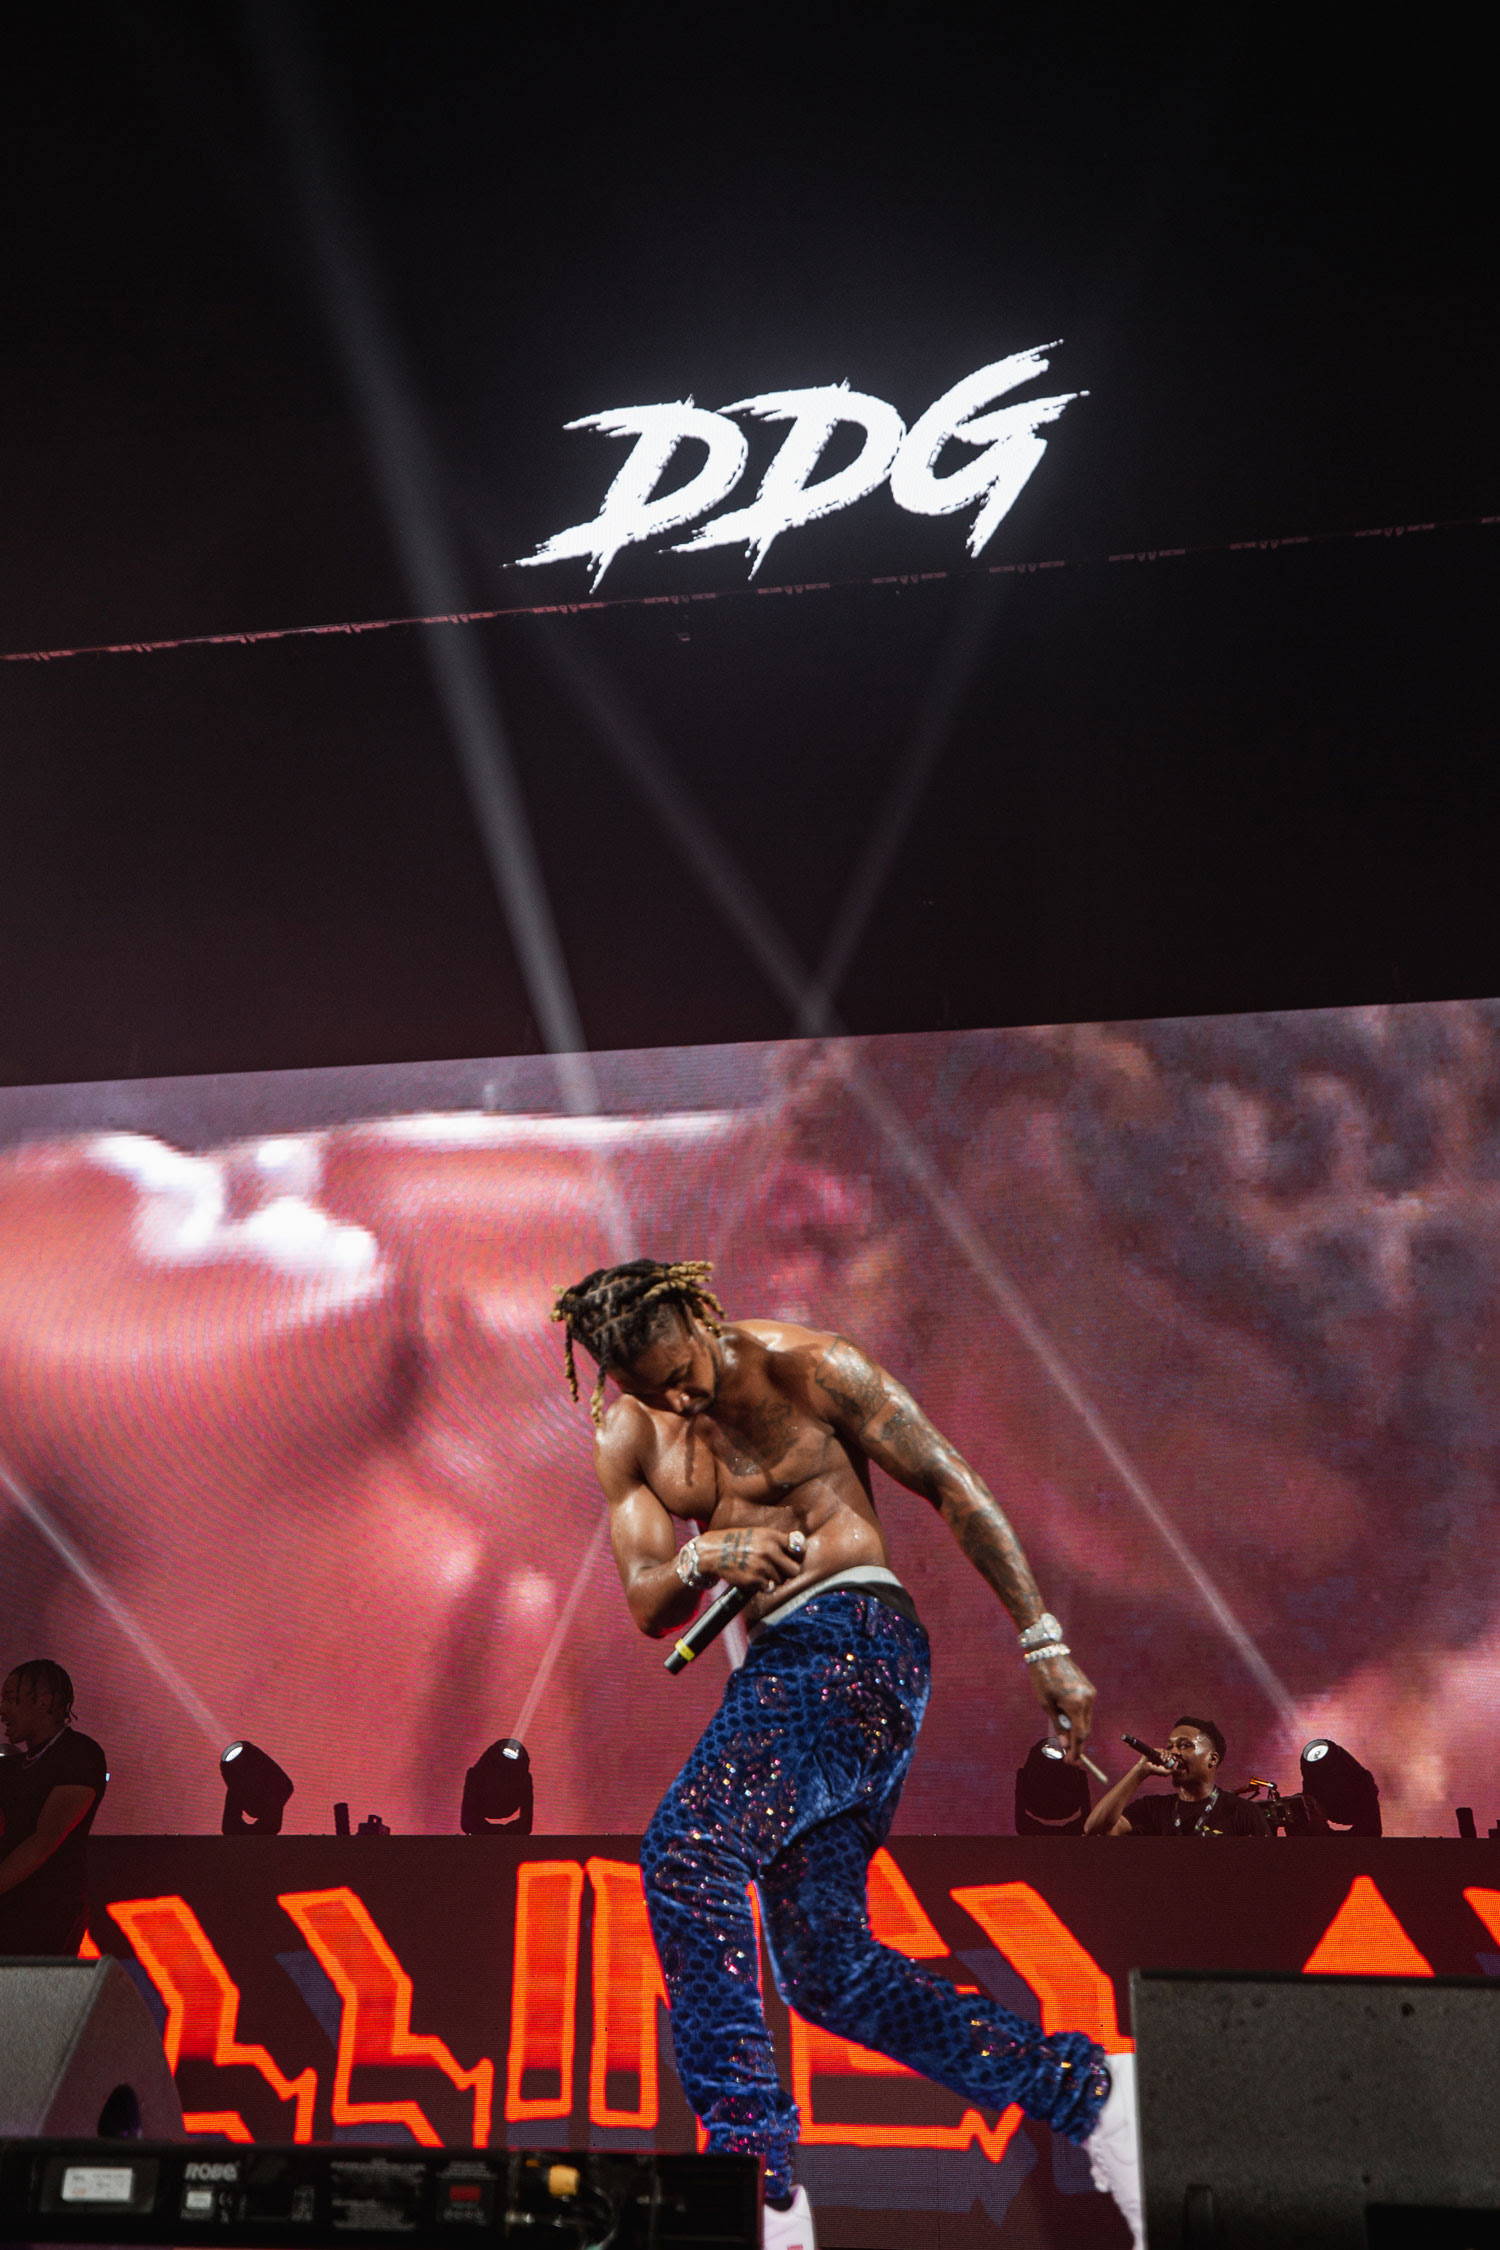 Detroit-area rapper DDG completes his transformation from YouTuber to rap star at the Monster Stage (Credit: Rolling Loud / @justnjames)